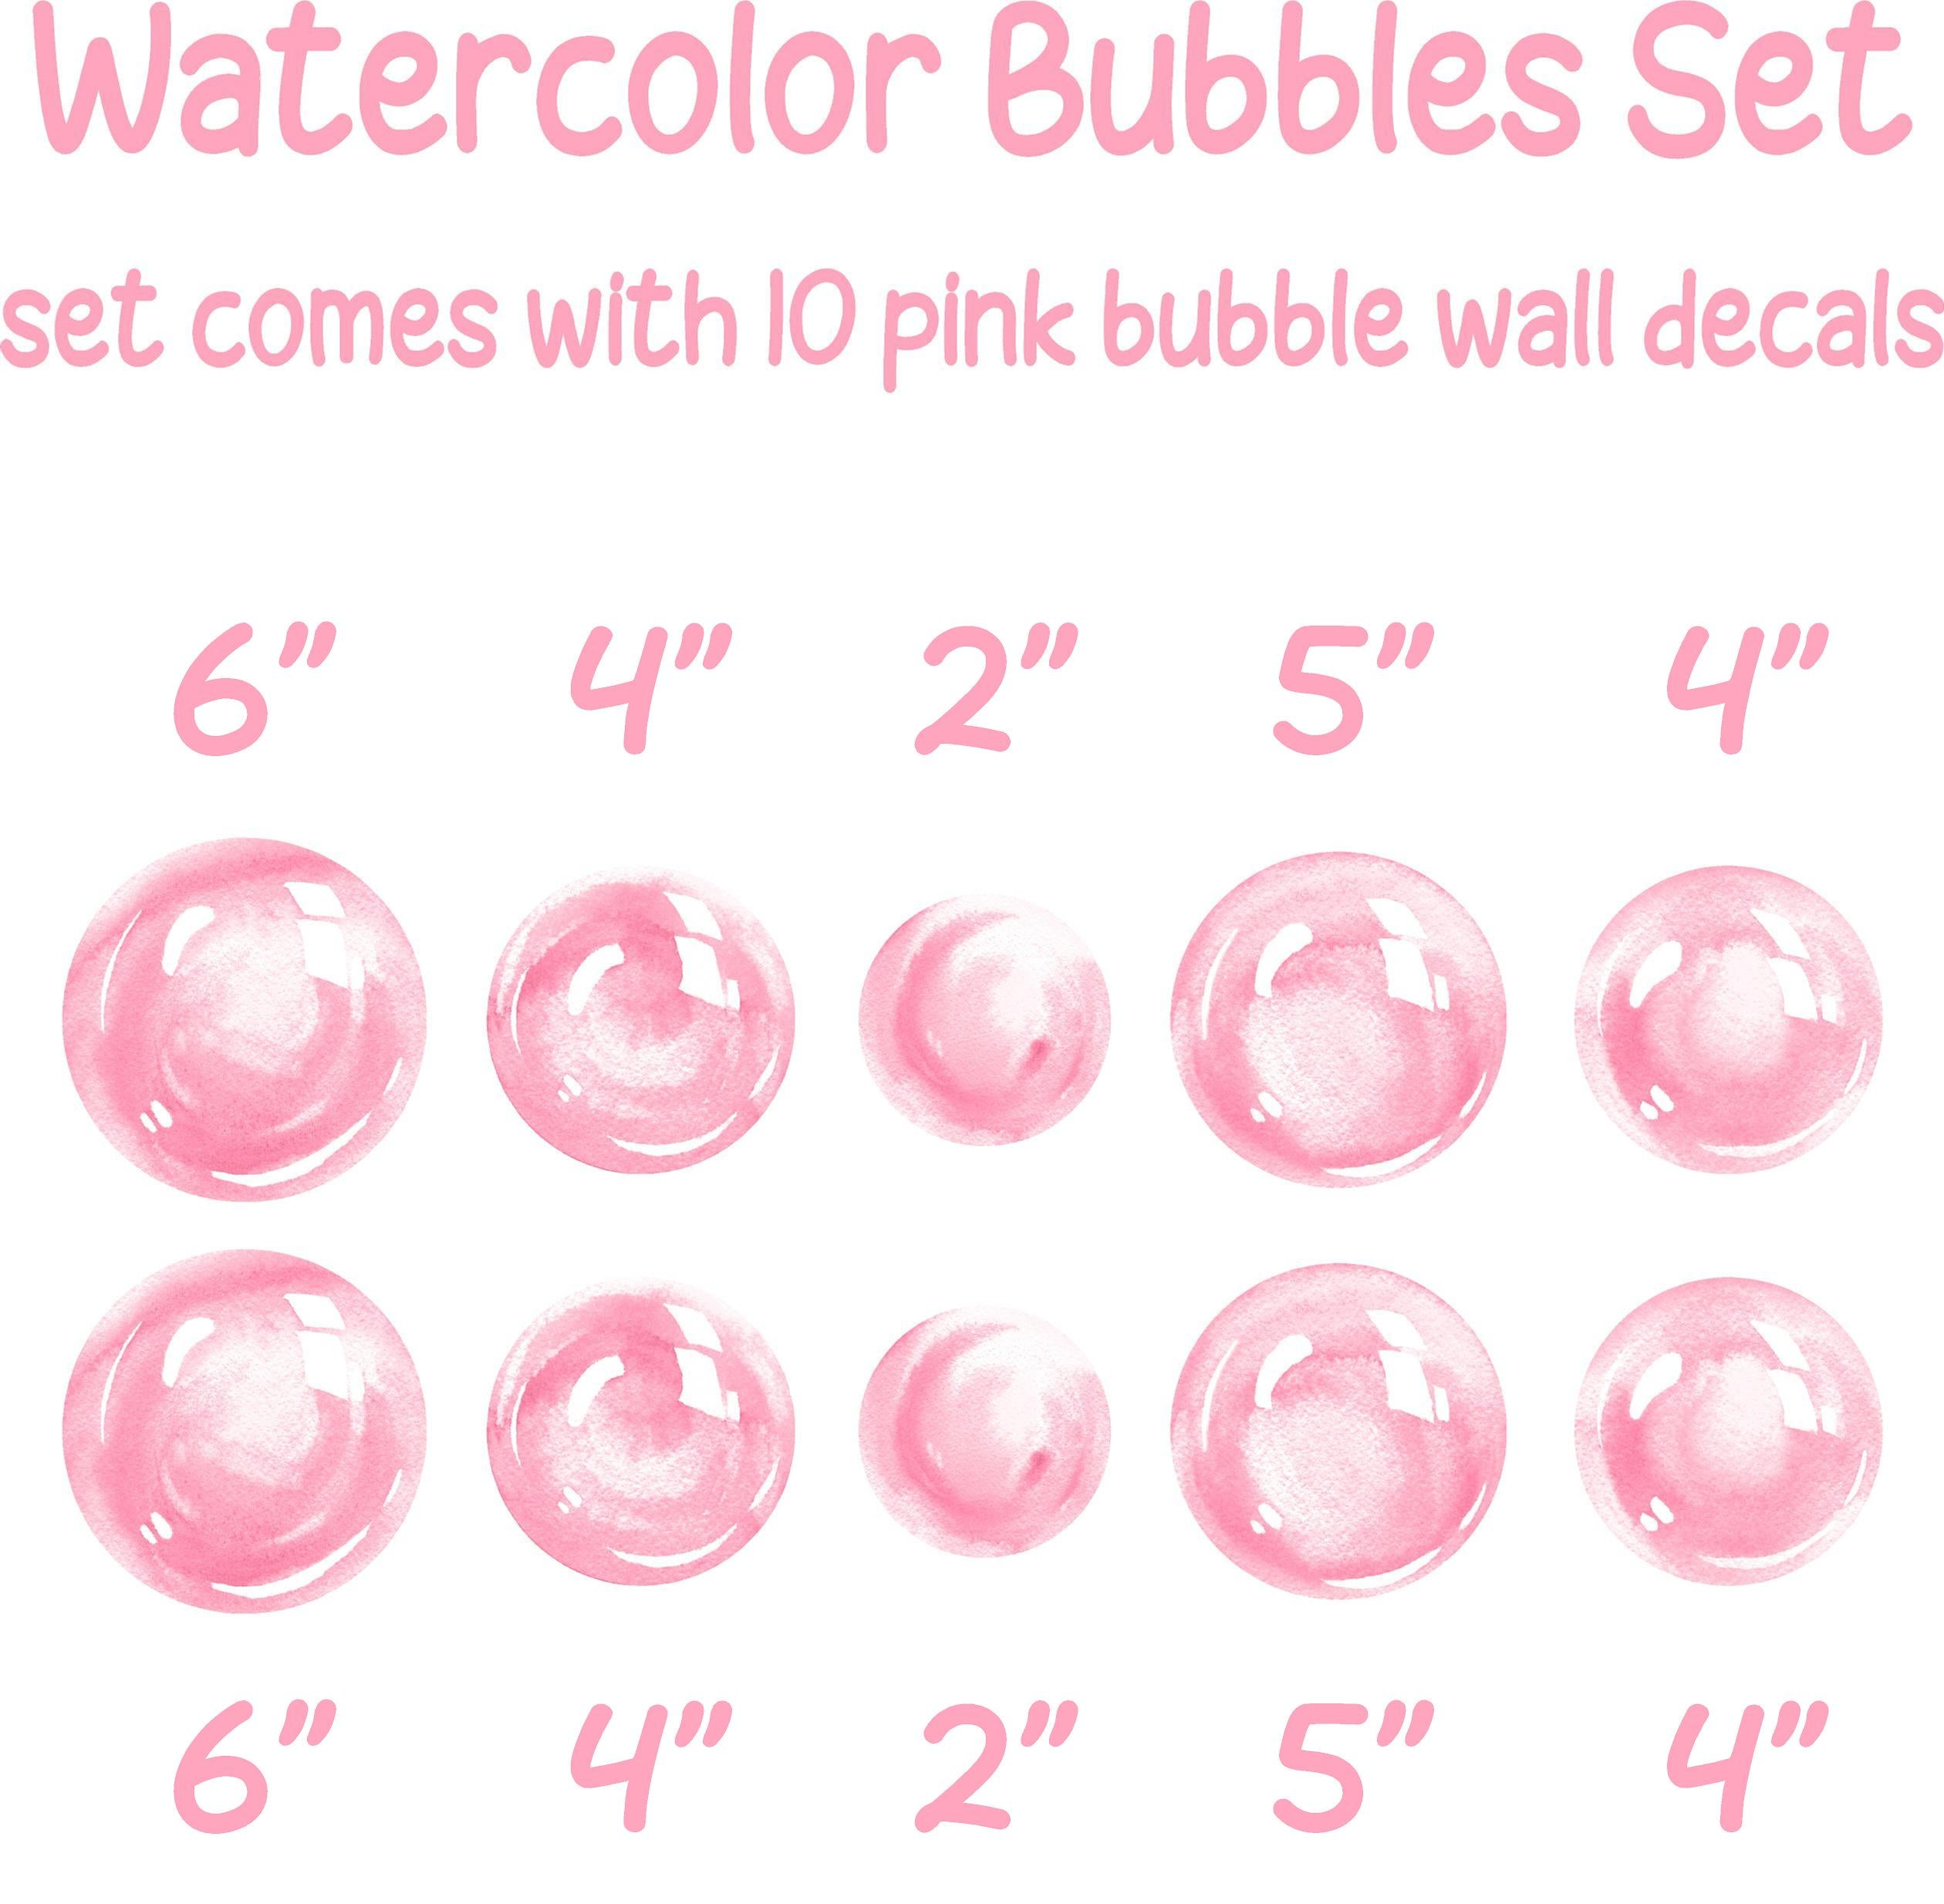 Watercolor Pink Bubbles Wall Decal Set Bubbles Wall Stickers Wall Art Nursery Decor Removable Fabric Vinyl Wall Stickers SIZE SMALL | DecalBaby